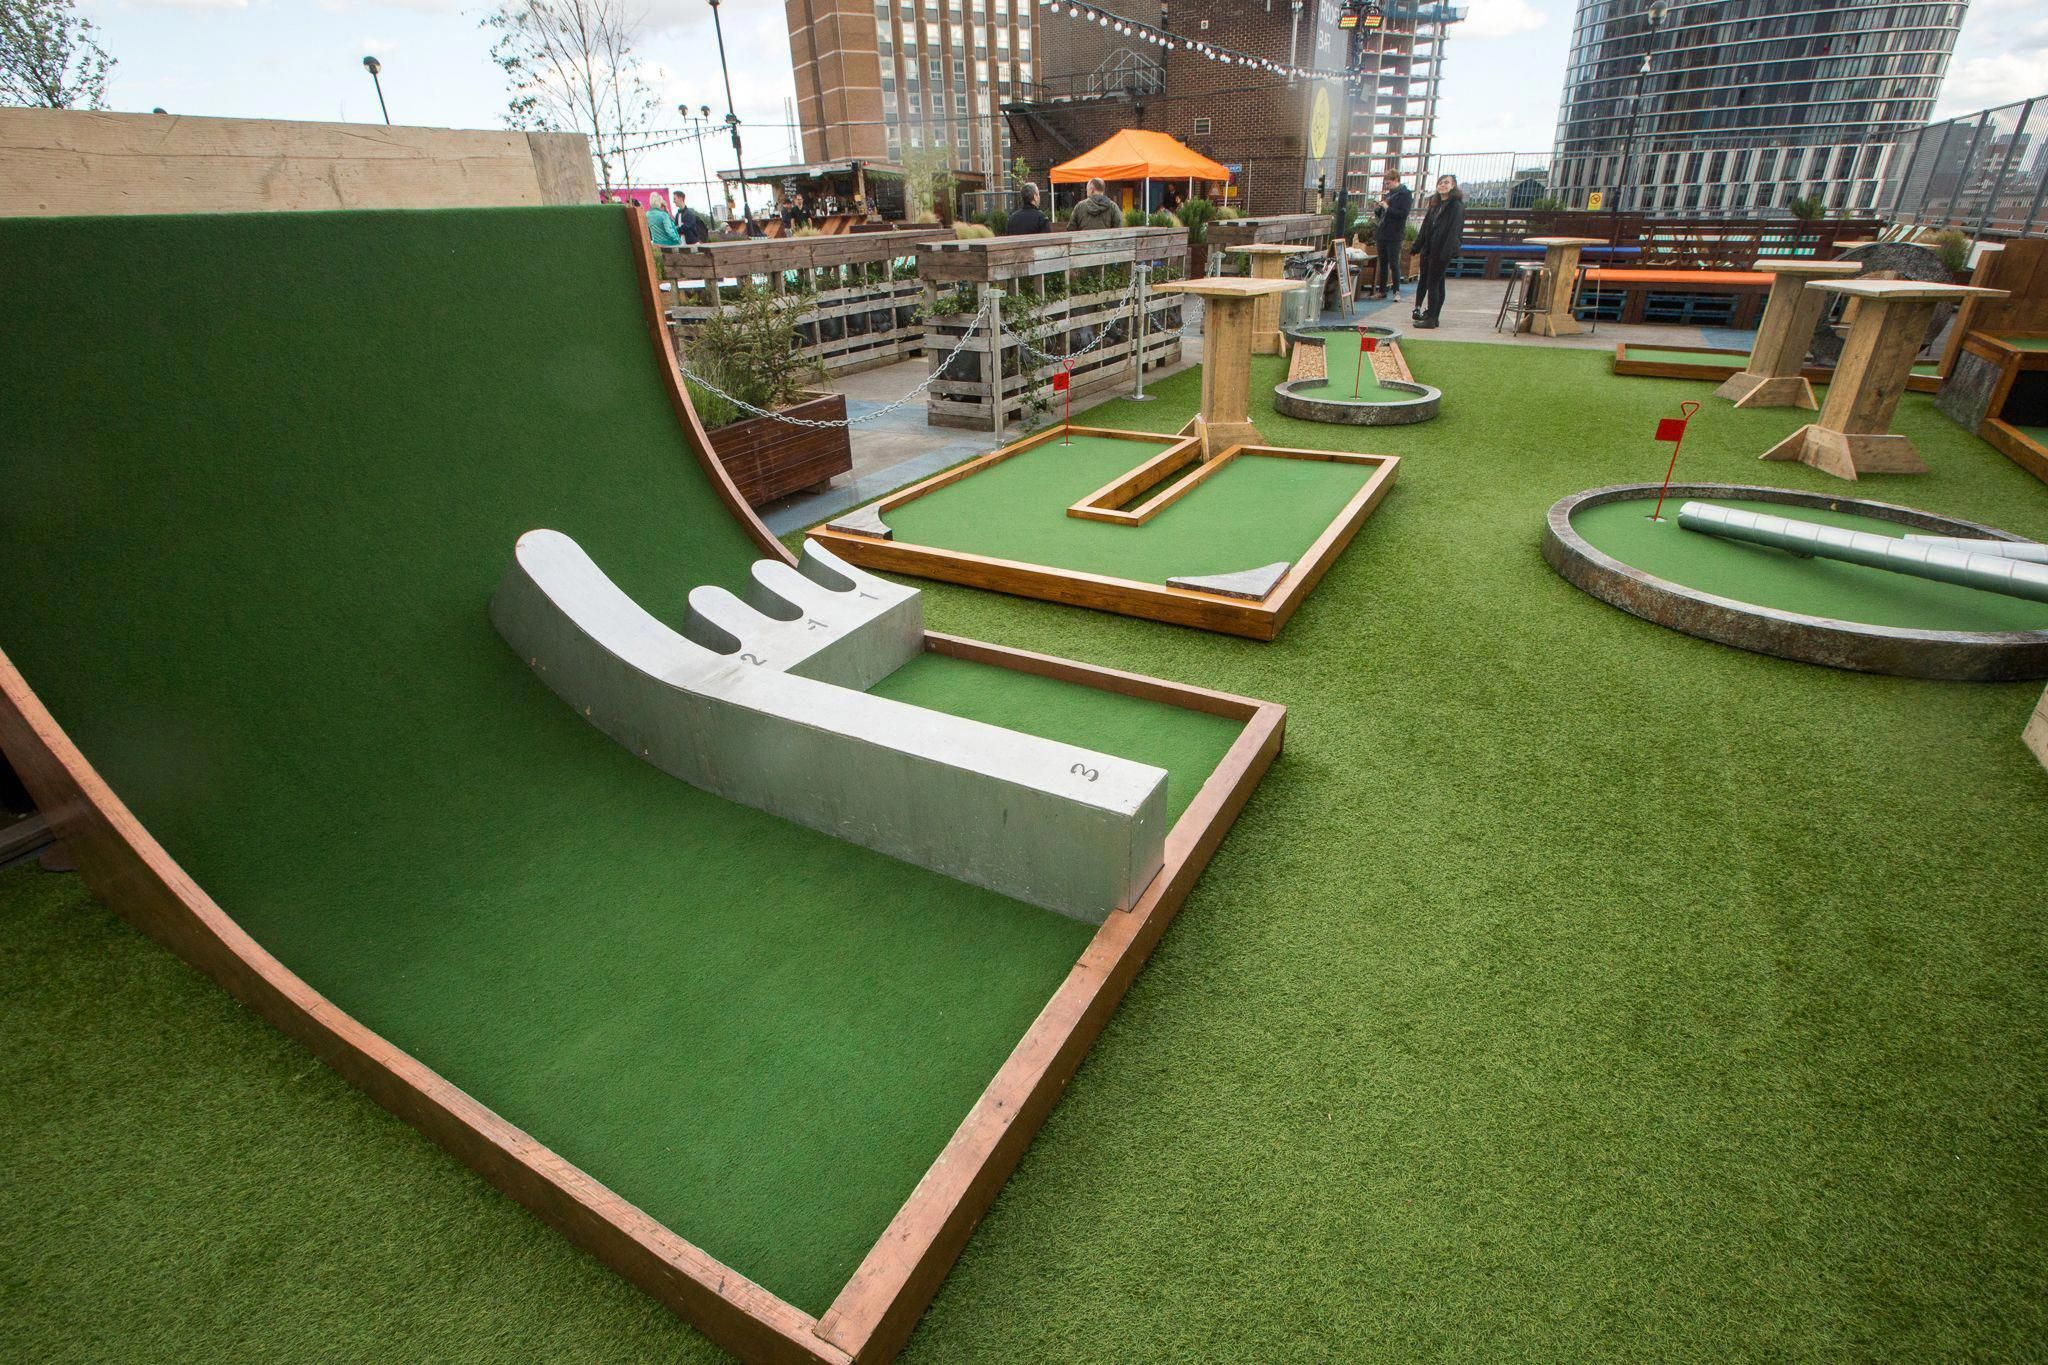 Bespoke 9 Hole Crazy Golf Course Designed And Built By The Halo Group For Rooftop Film Club Creative Adventure Golf Miniature Golf Course Crazy Golf